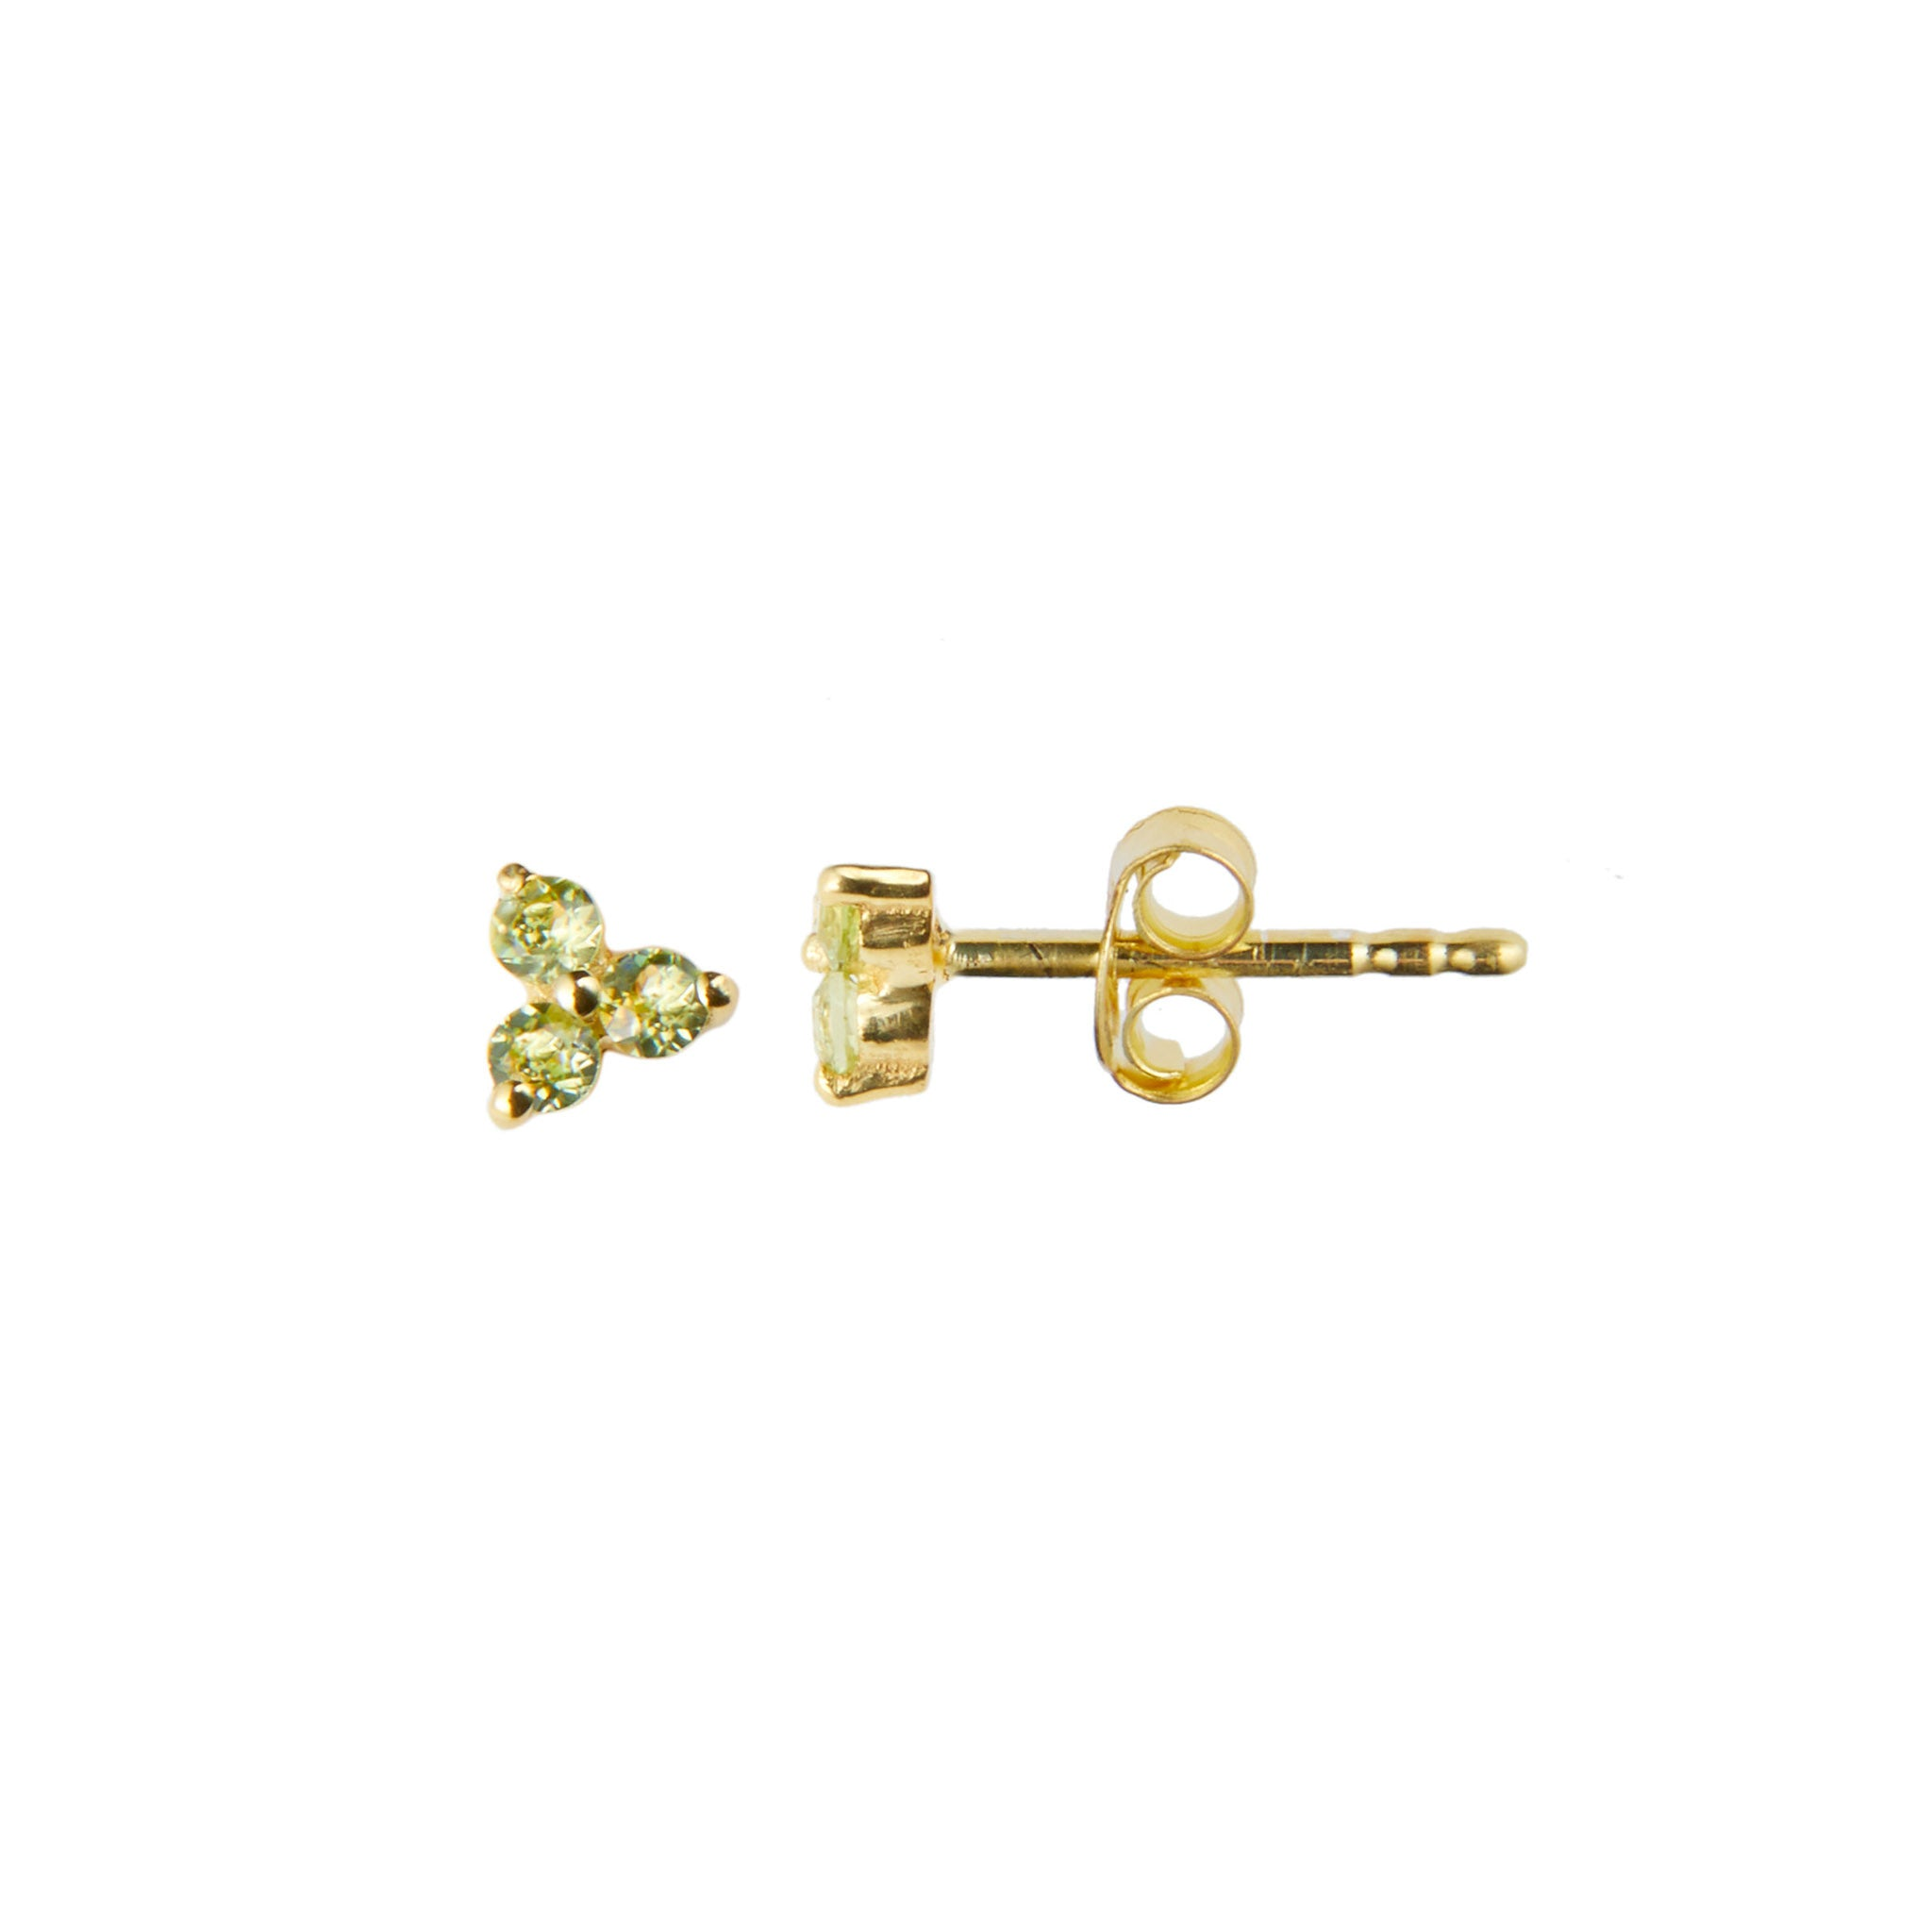 Clover Stud in Gold with Peridot